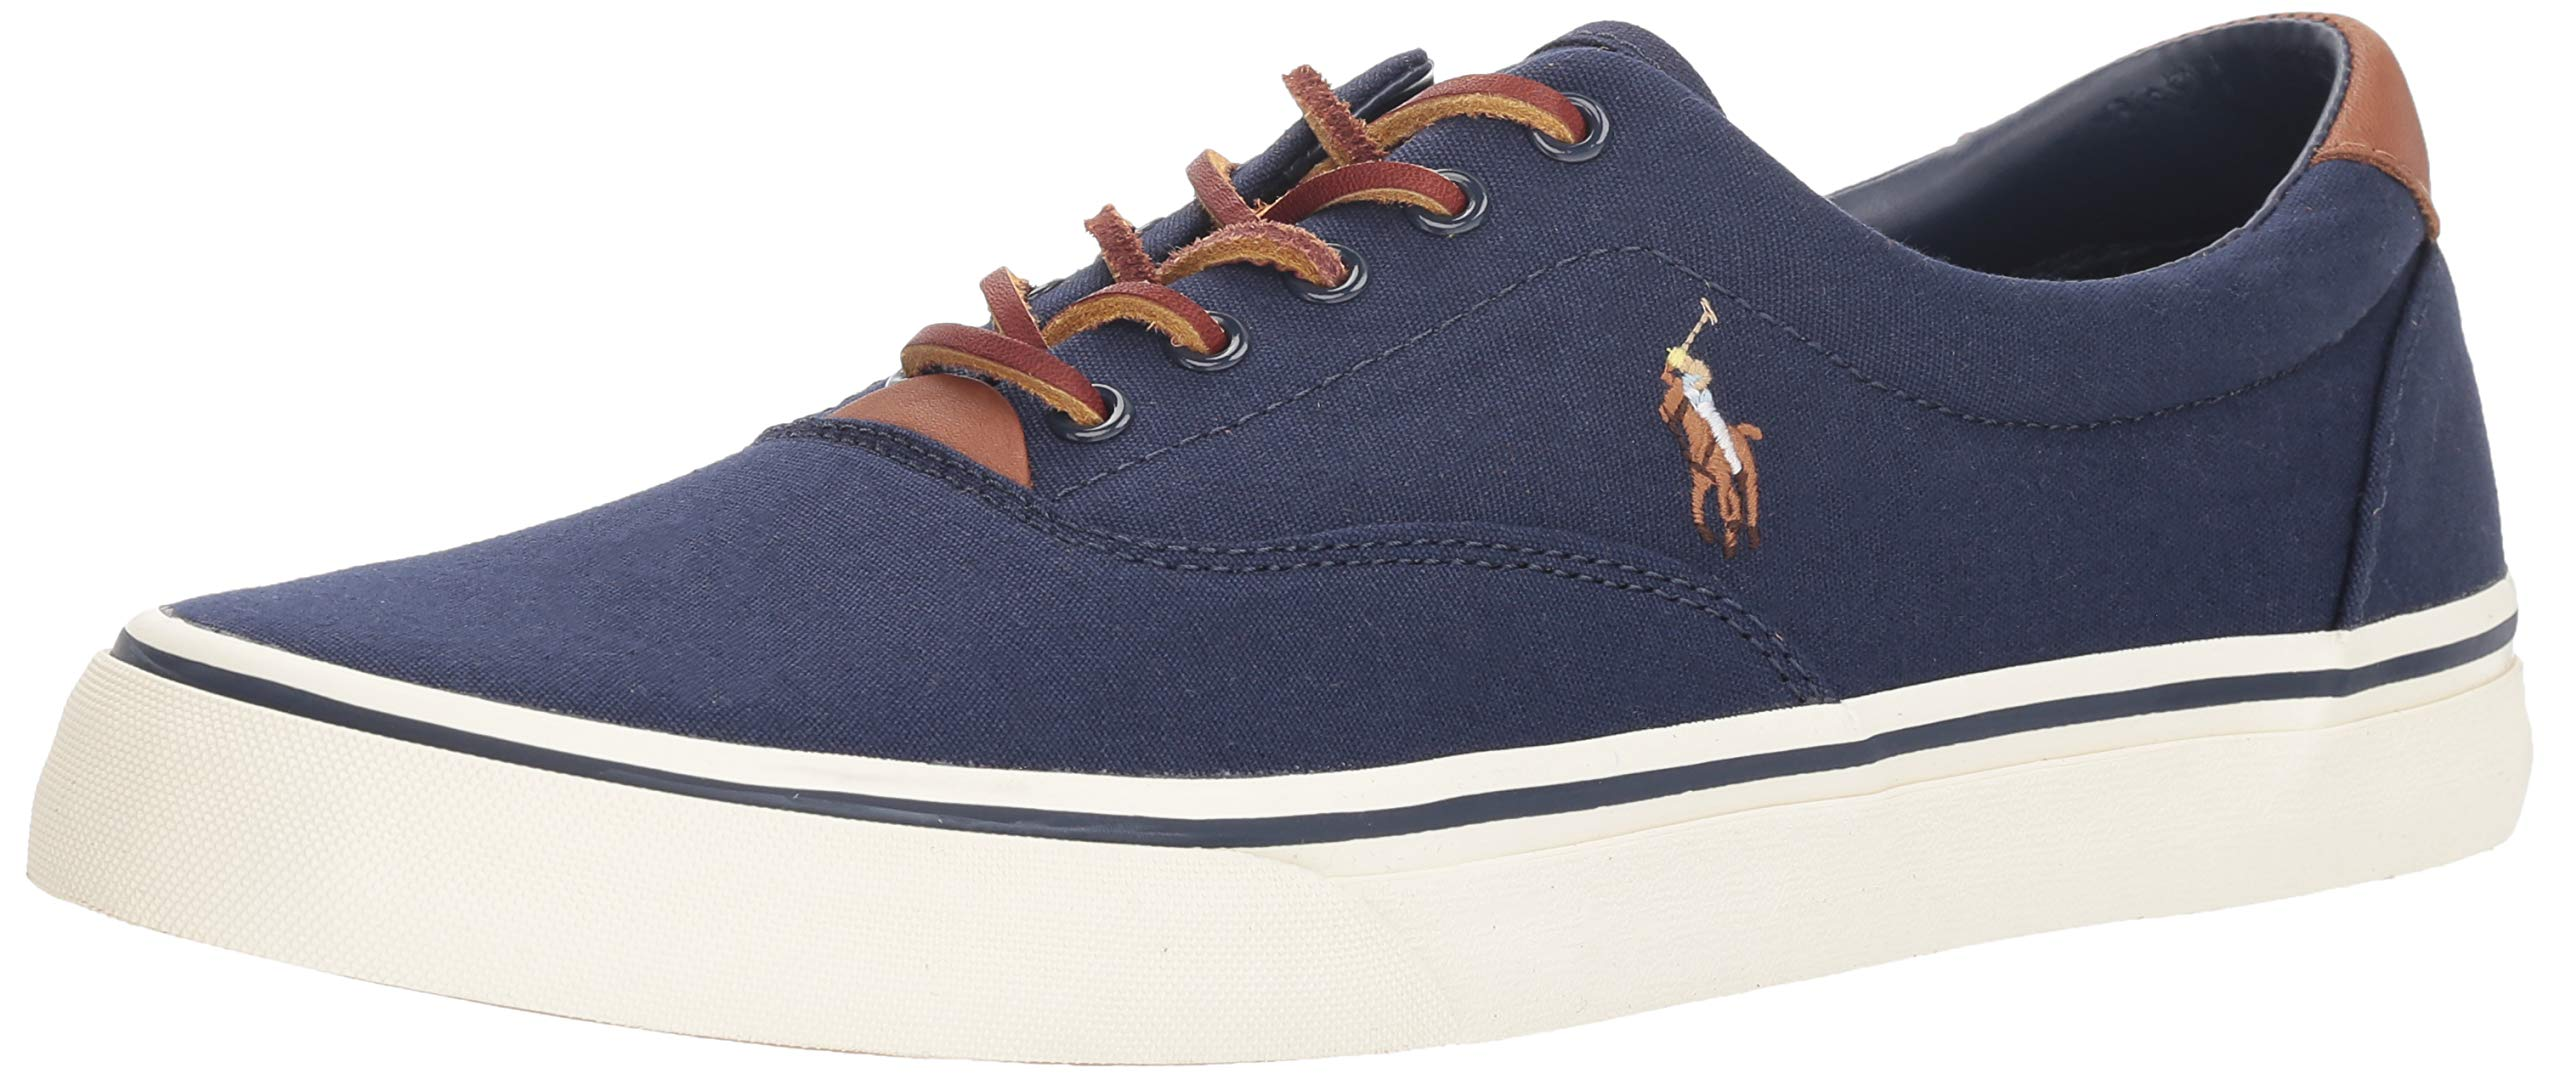 Polo Ralph Lauren Men's Thorton Sneaker, Navy, 9.5 D US